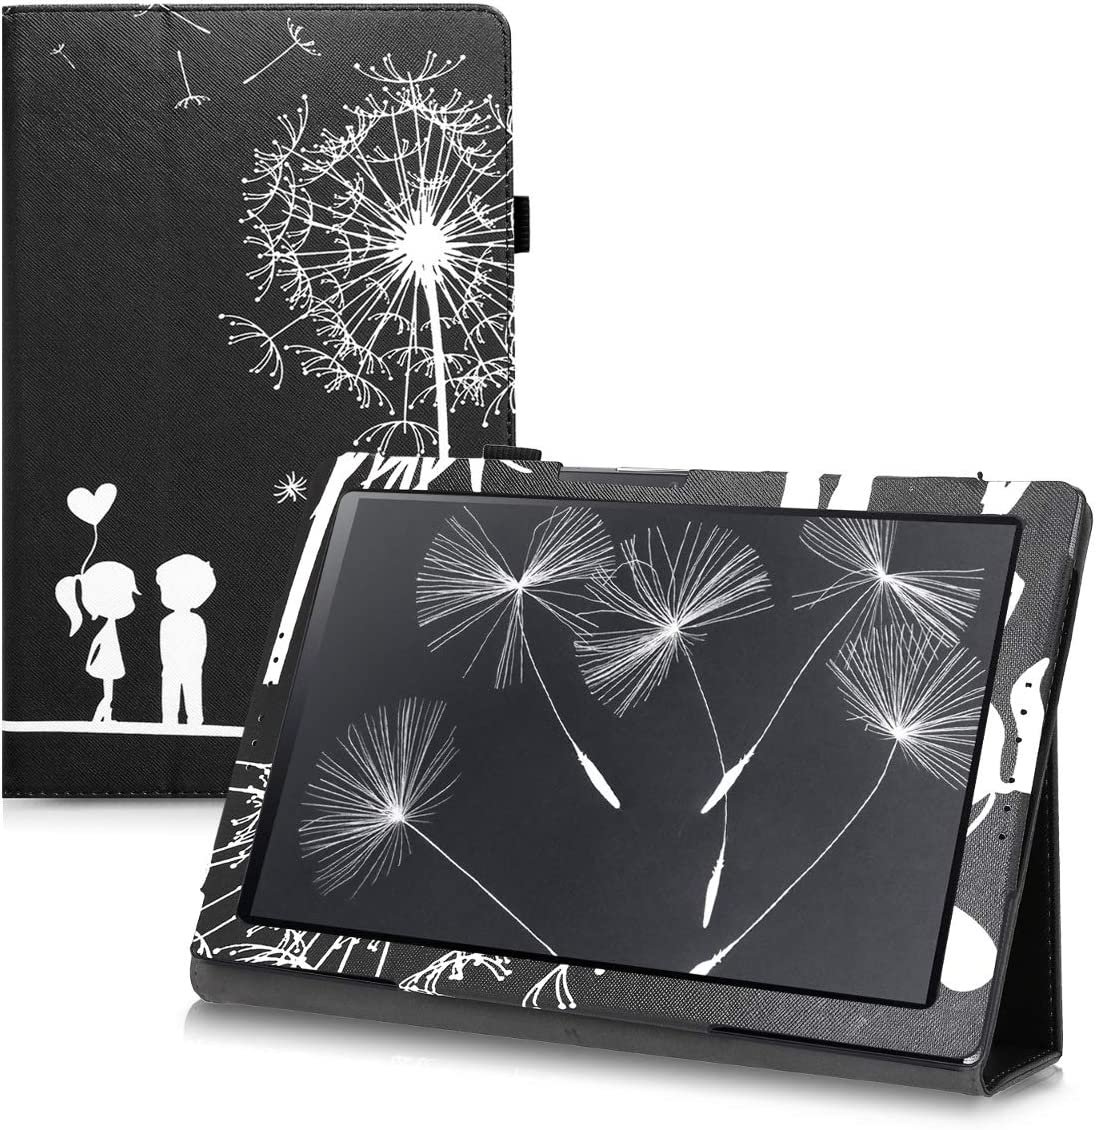 kwmobile Case Compatible with Acer Iconia One 10 (B3-A40) - Slim PU Leather Tablet Cover with Stand Feature - Dandelion Love White/Black